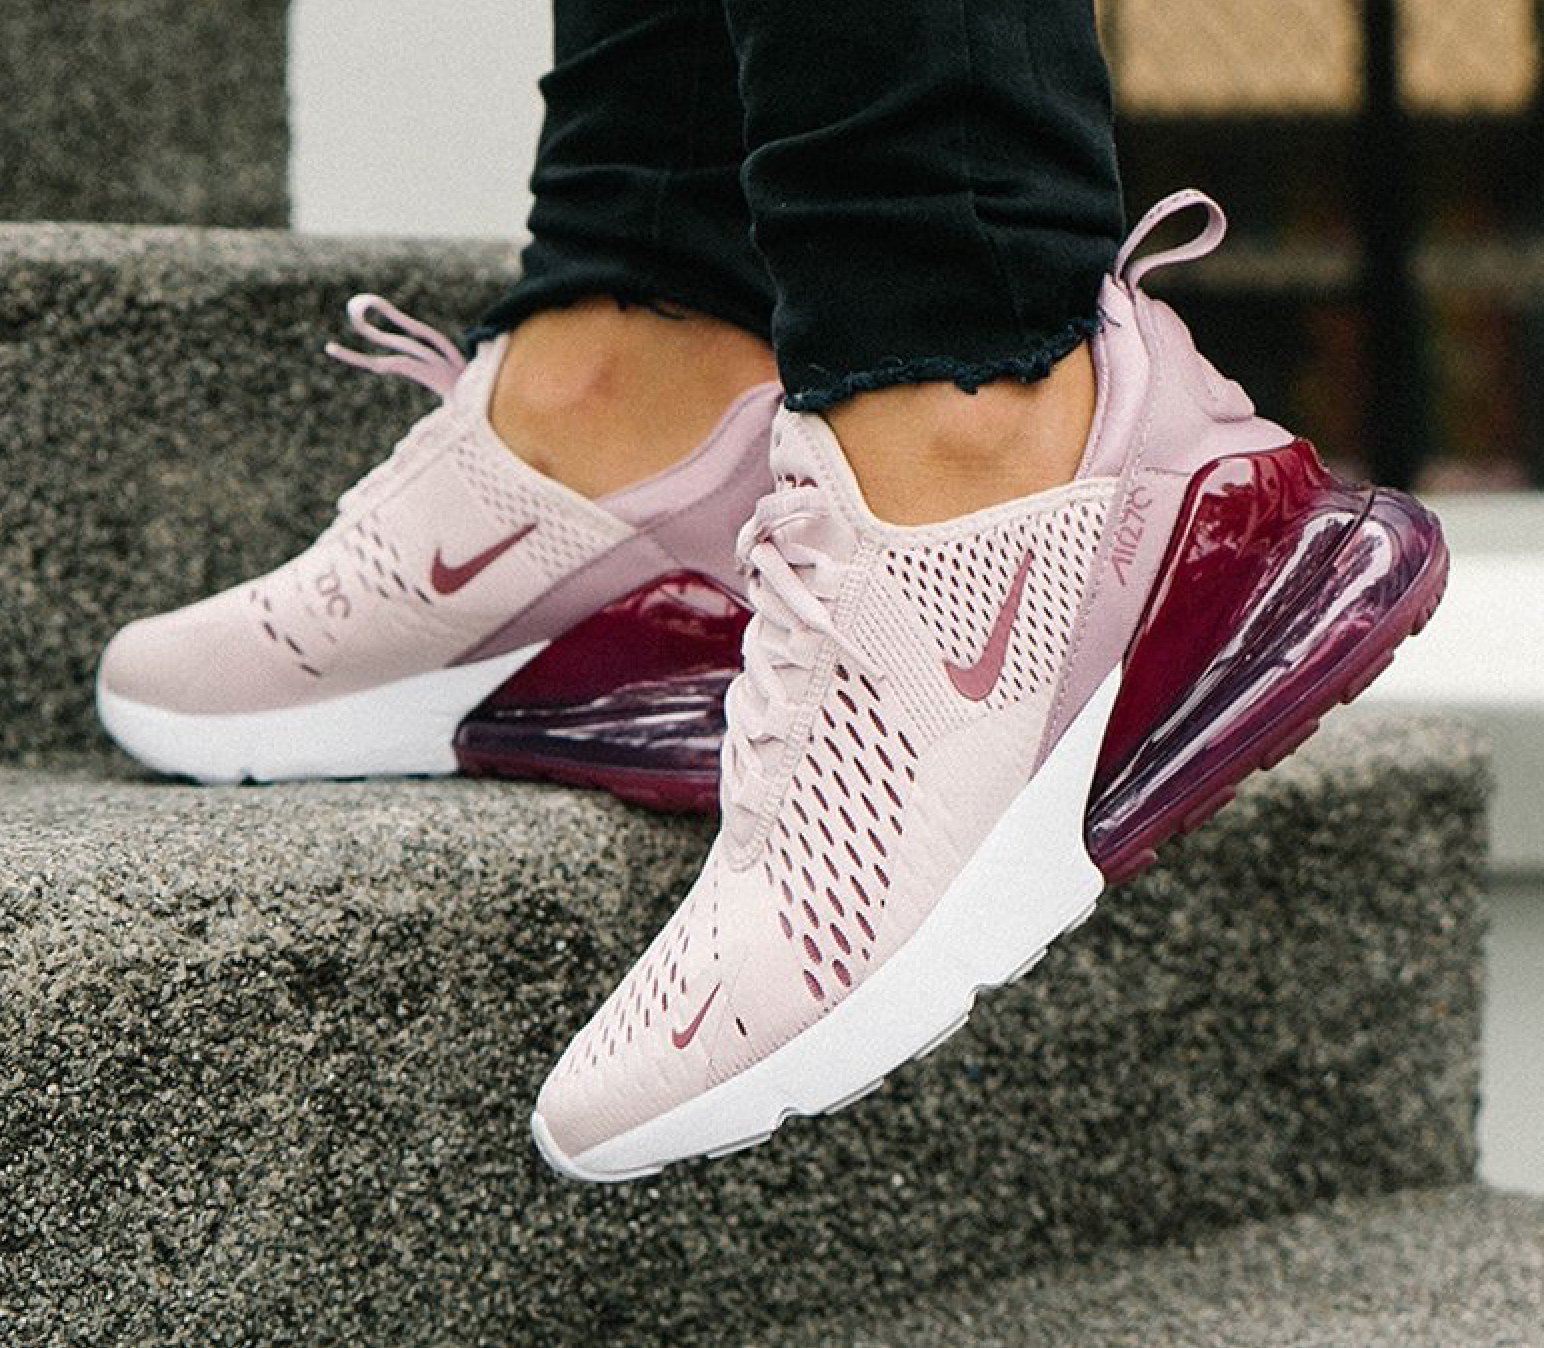 Cool Nike Air Max 270 shoes Barely Rose walking up street steps in black  jeans. 6e22f5e44b